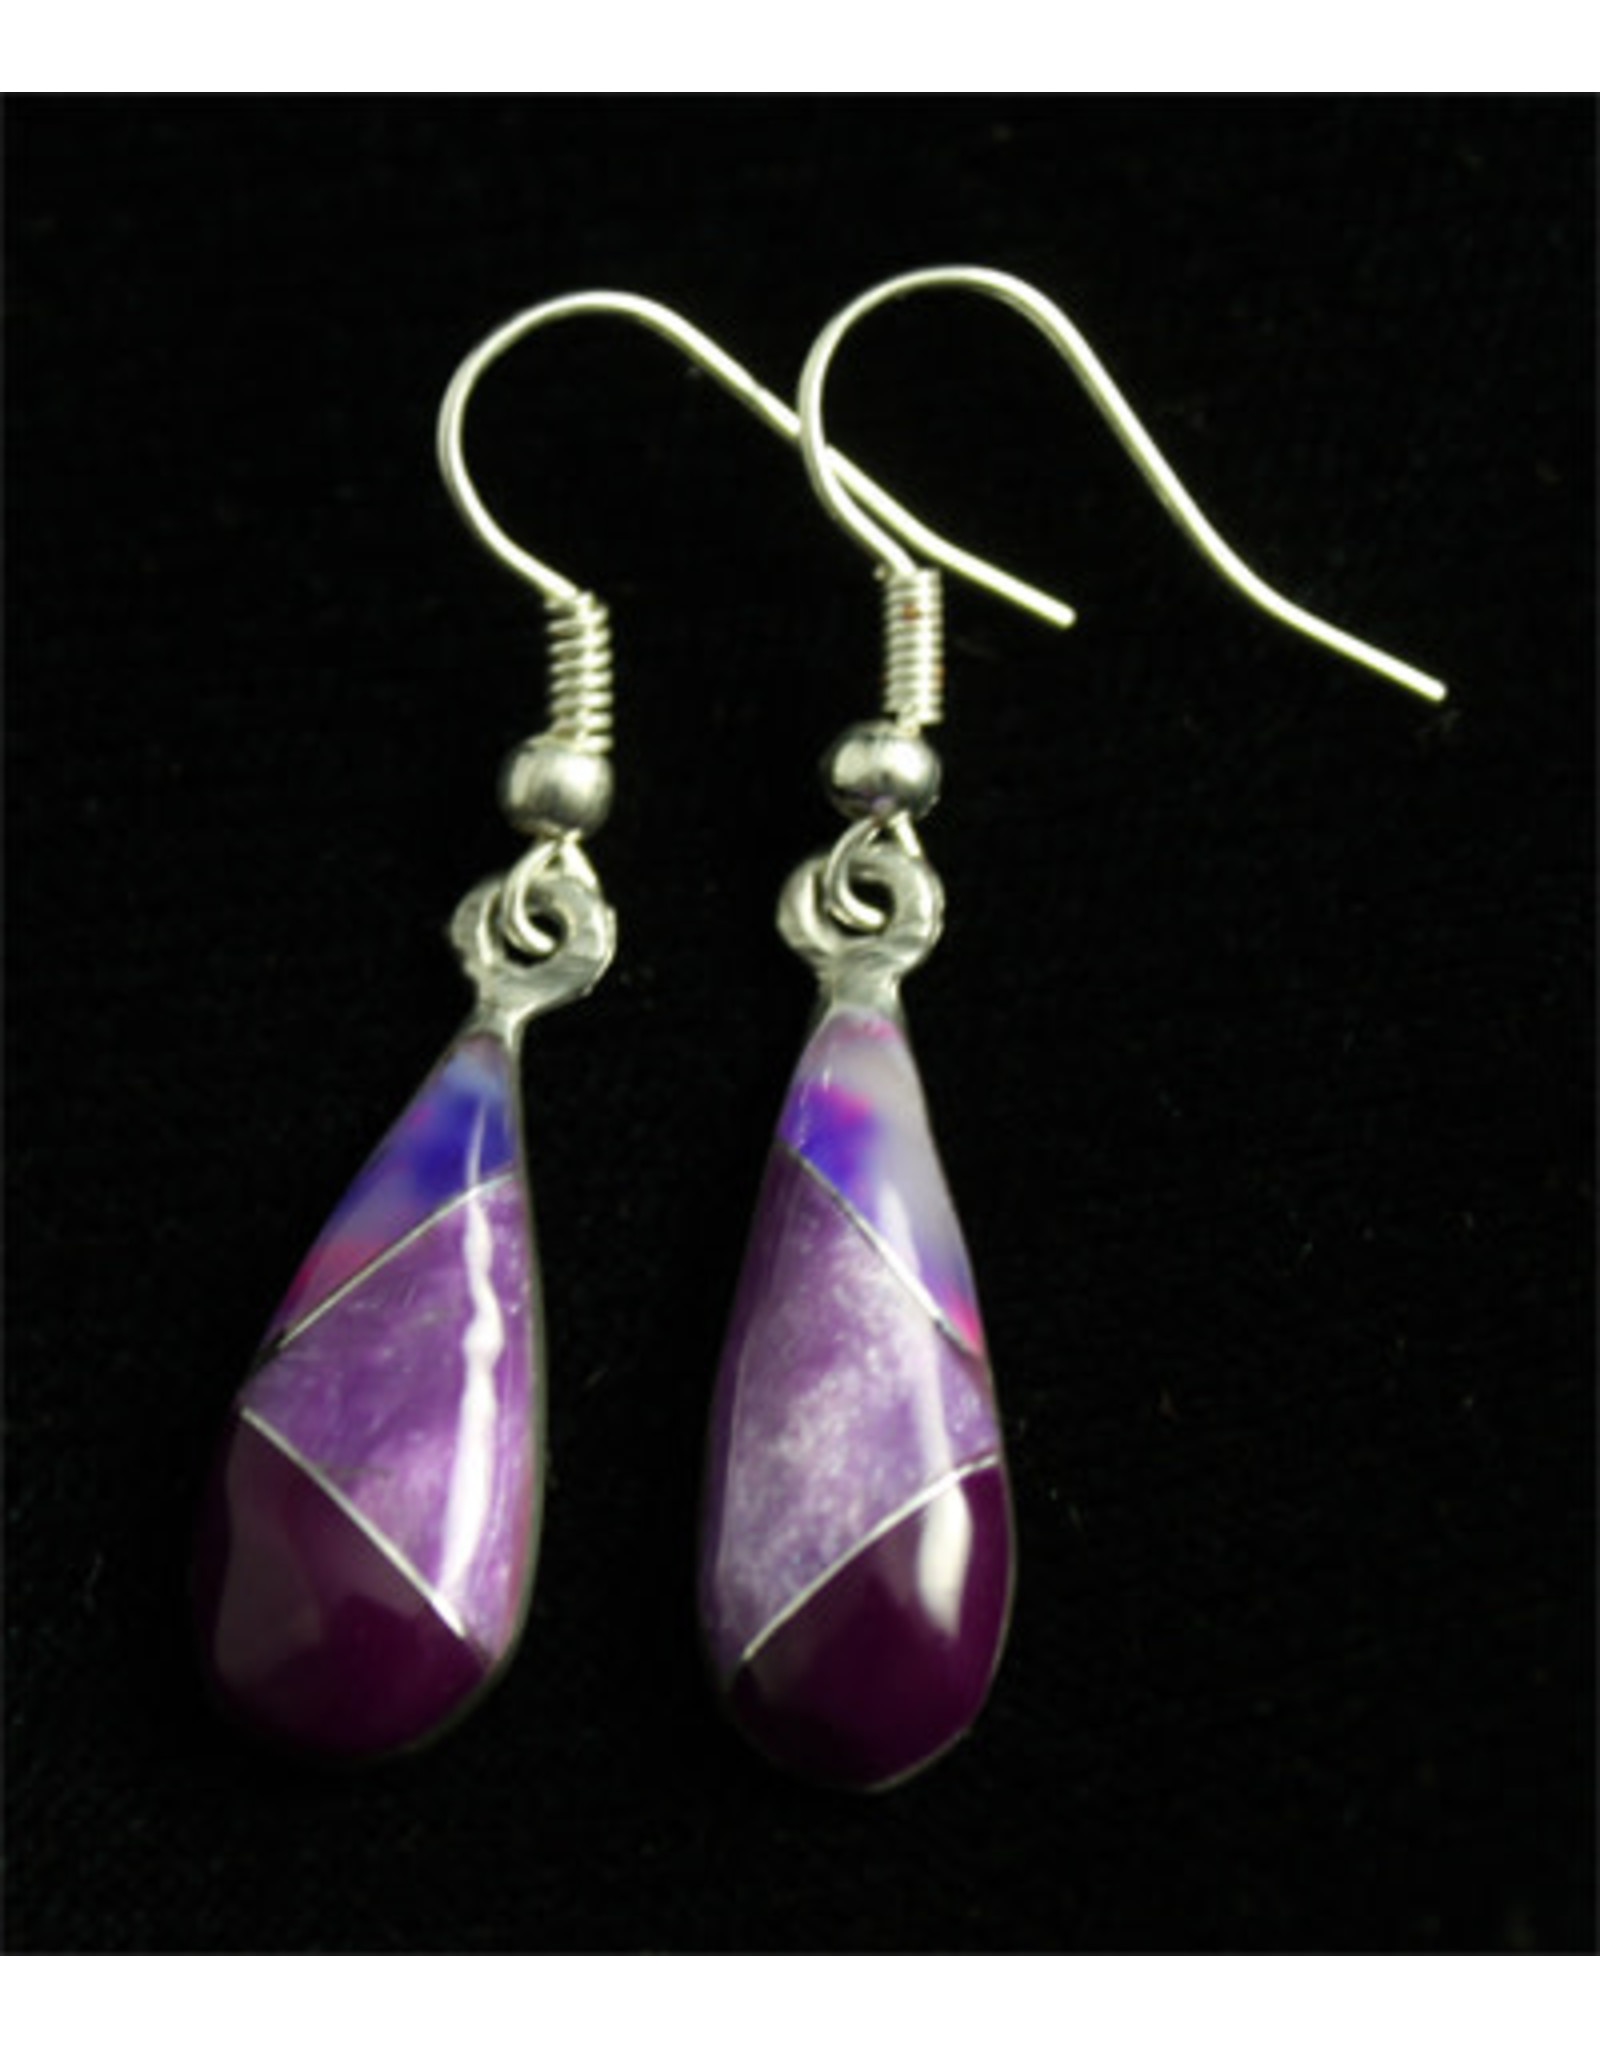 Alpaca Resin and Amethyst Stone Earrings, Mexico